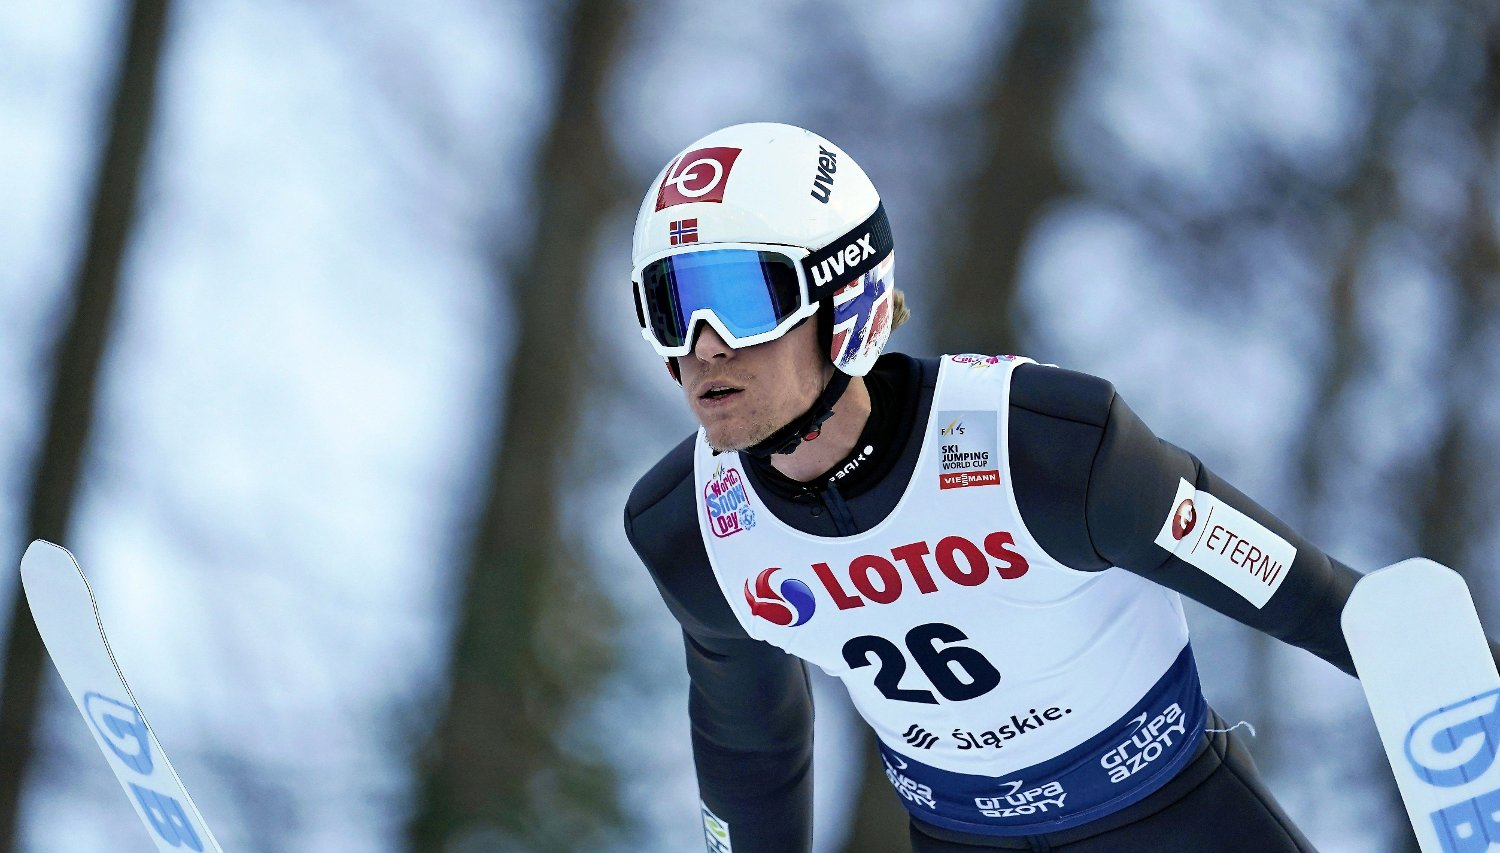 Ski Jumping - FIS Ski Jumping World Cup - Wisla, Poland - November 24, 2019 Norway's Daniel Andre Tande in action Agencja Gazeta/Grzegorz Celejewski via REUTERS ATTENTION EDITORS - THIS IMAGE WAS PROVIDED BY A THIRD PARTY. POLAND OUT. NO COMMERCIAL OR EDITORIAL SALES IN POLAND.